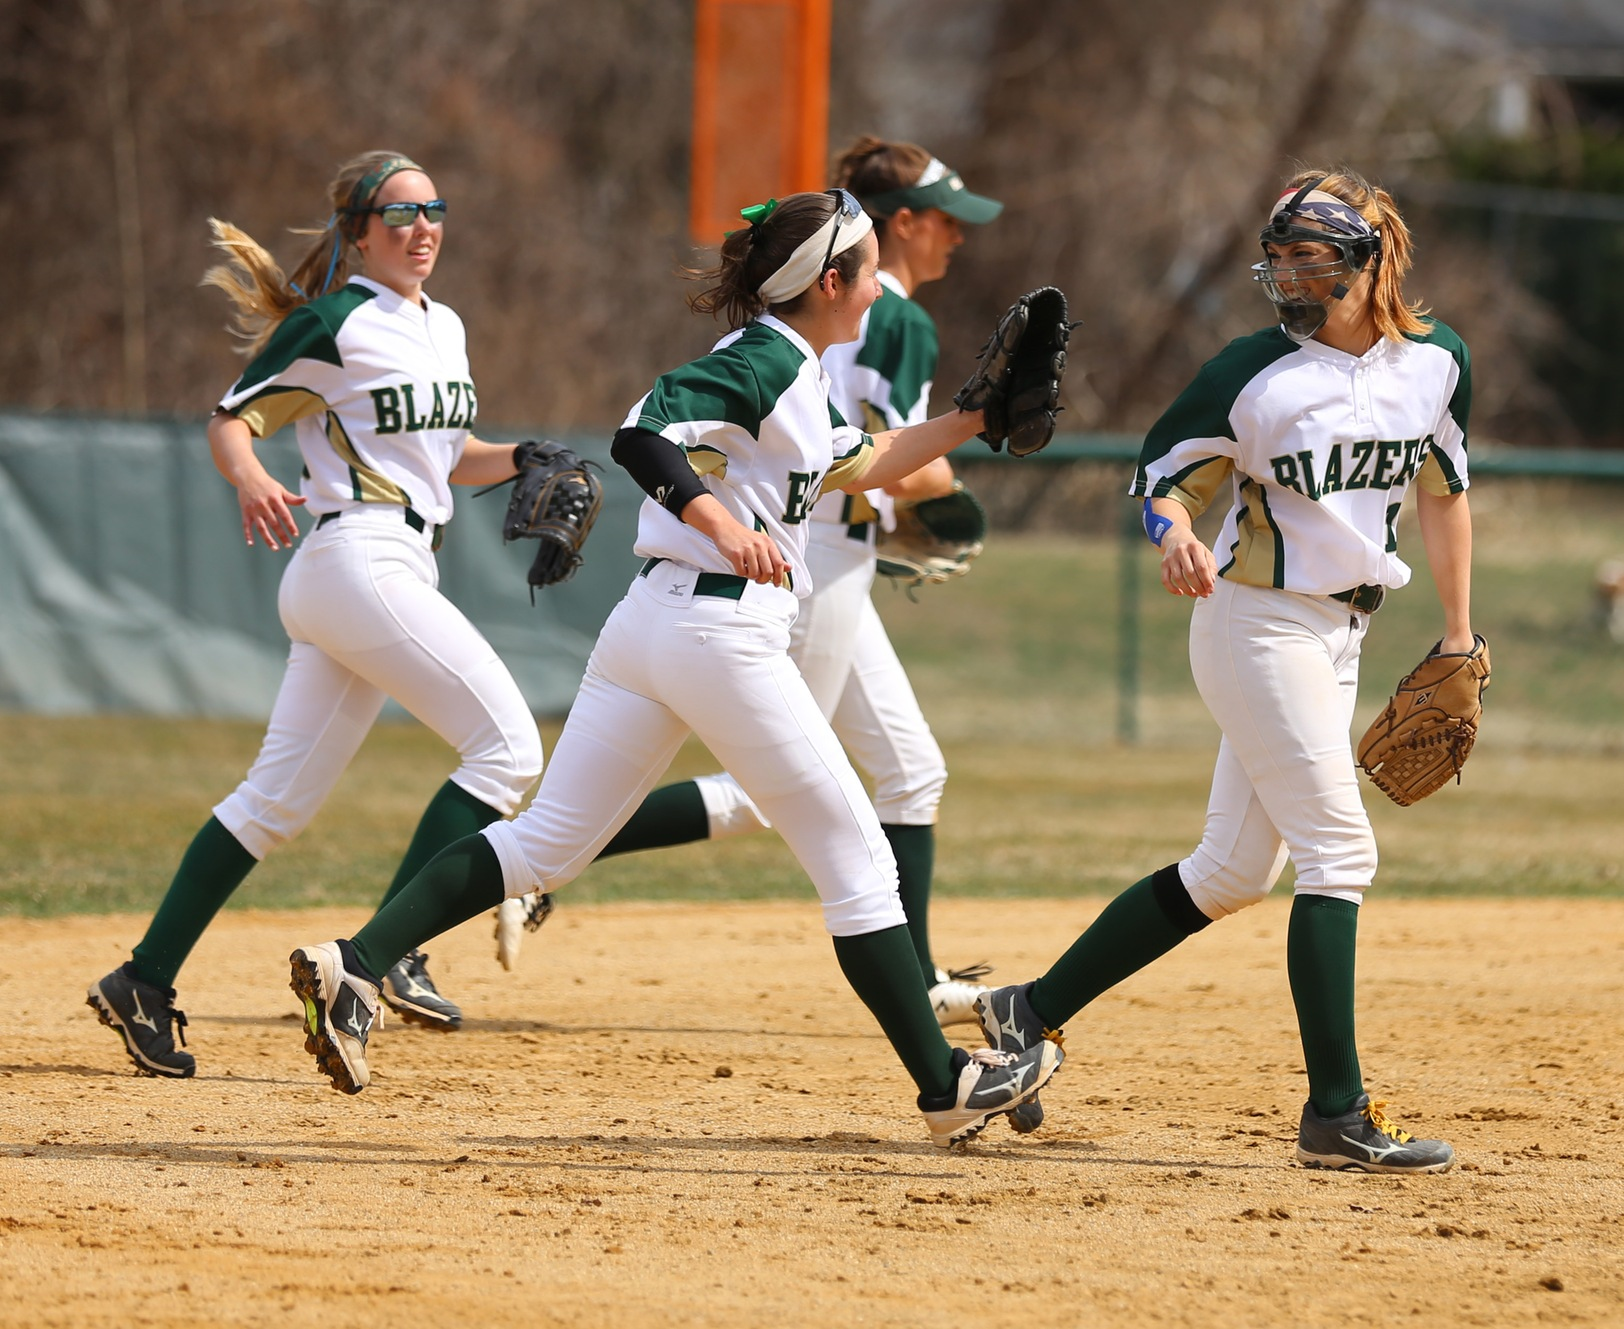 Softball Swept In NECC Doubleheader At Becker